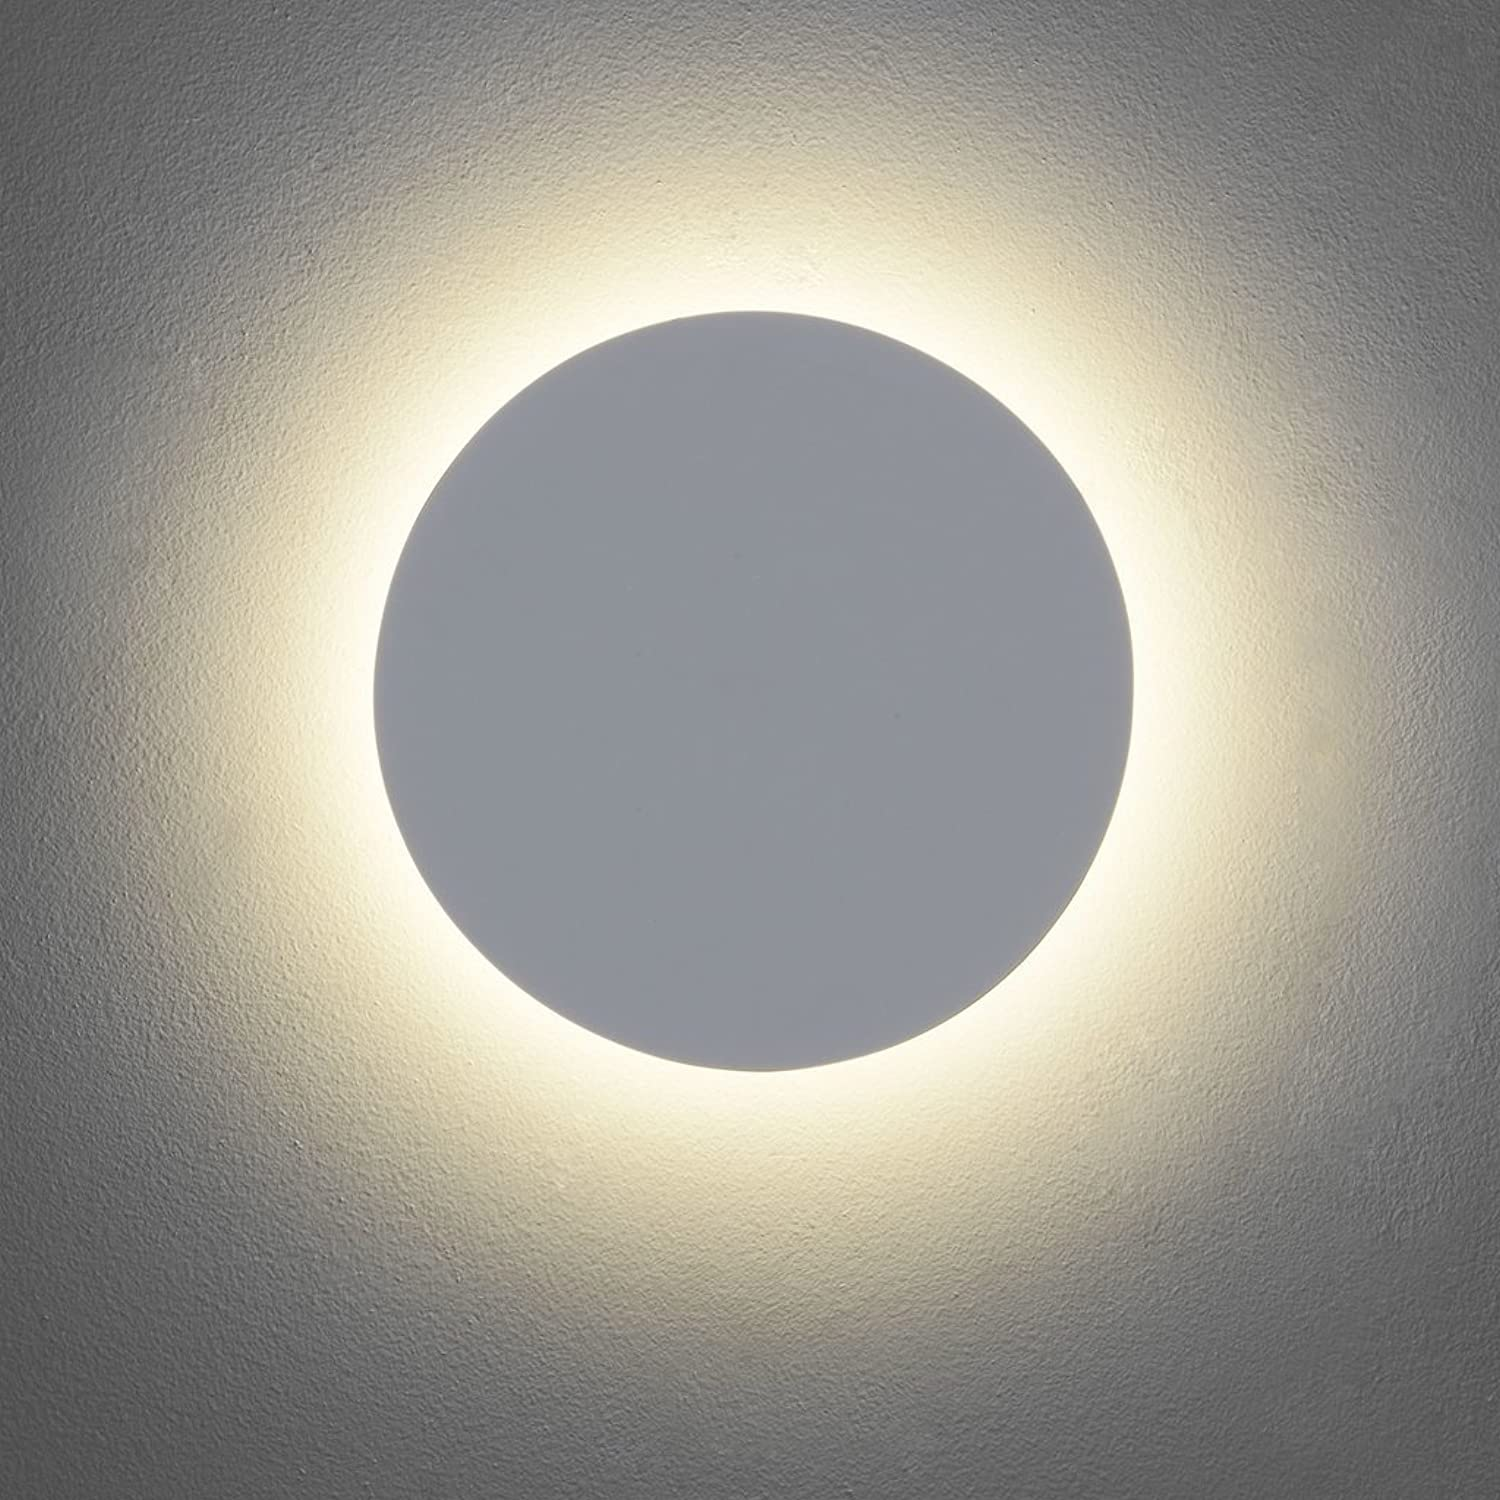 Astro LED Wandleuchte Eclipse Round 250 IP20  LEDs fest verbaut Inklusive Leuchtmittel  LED Strips 8W 452lm warmwei  7249